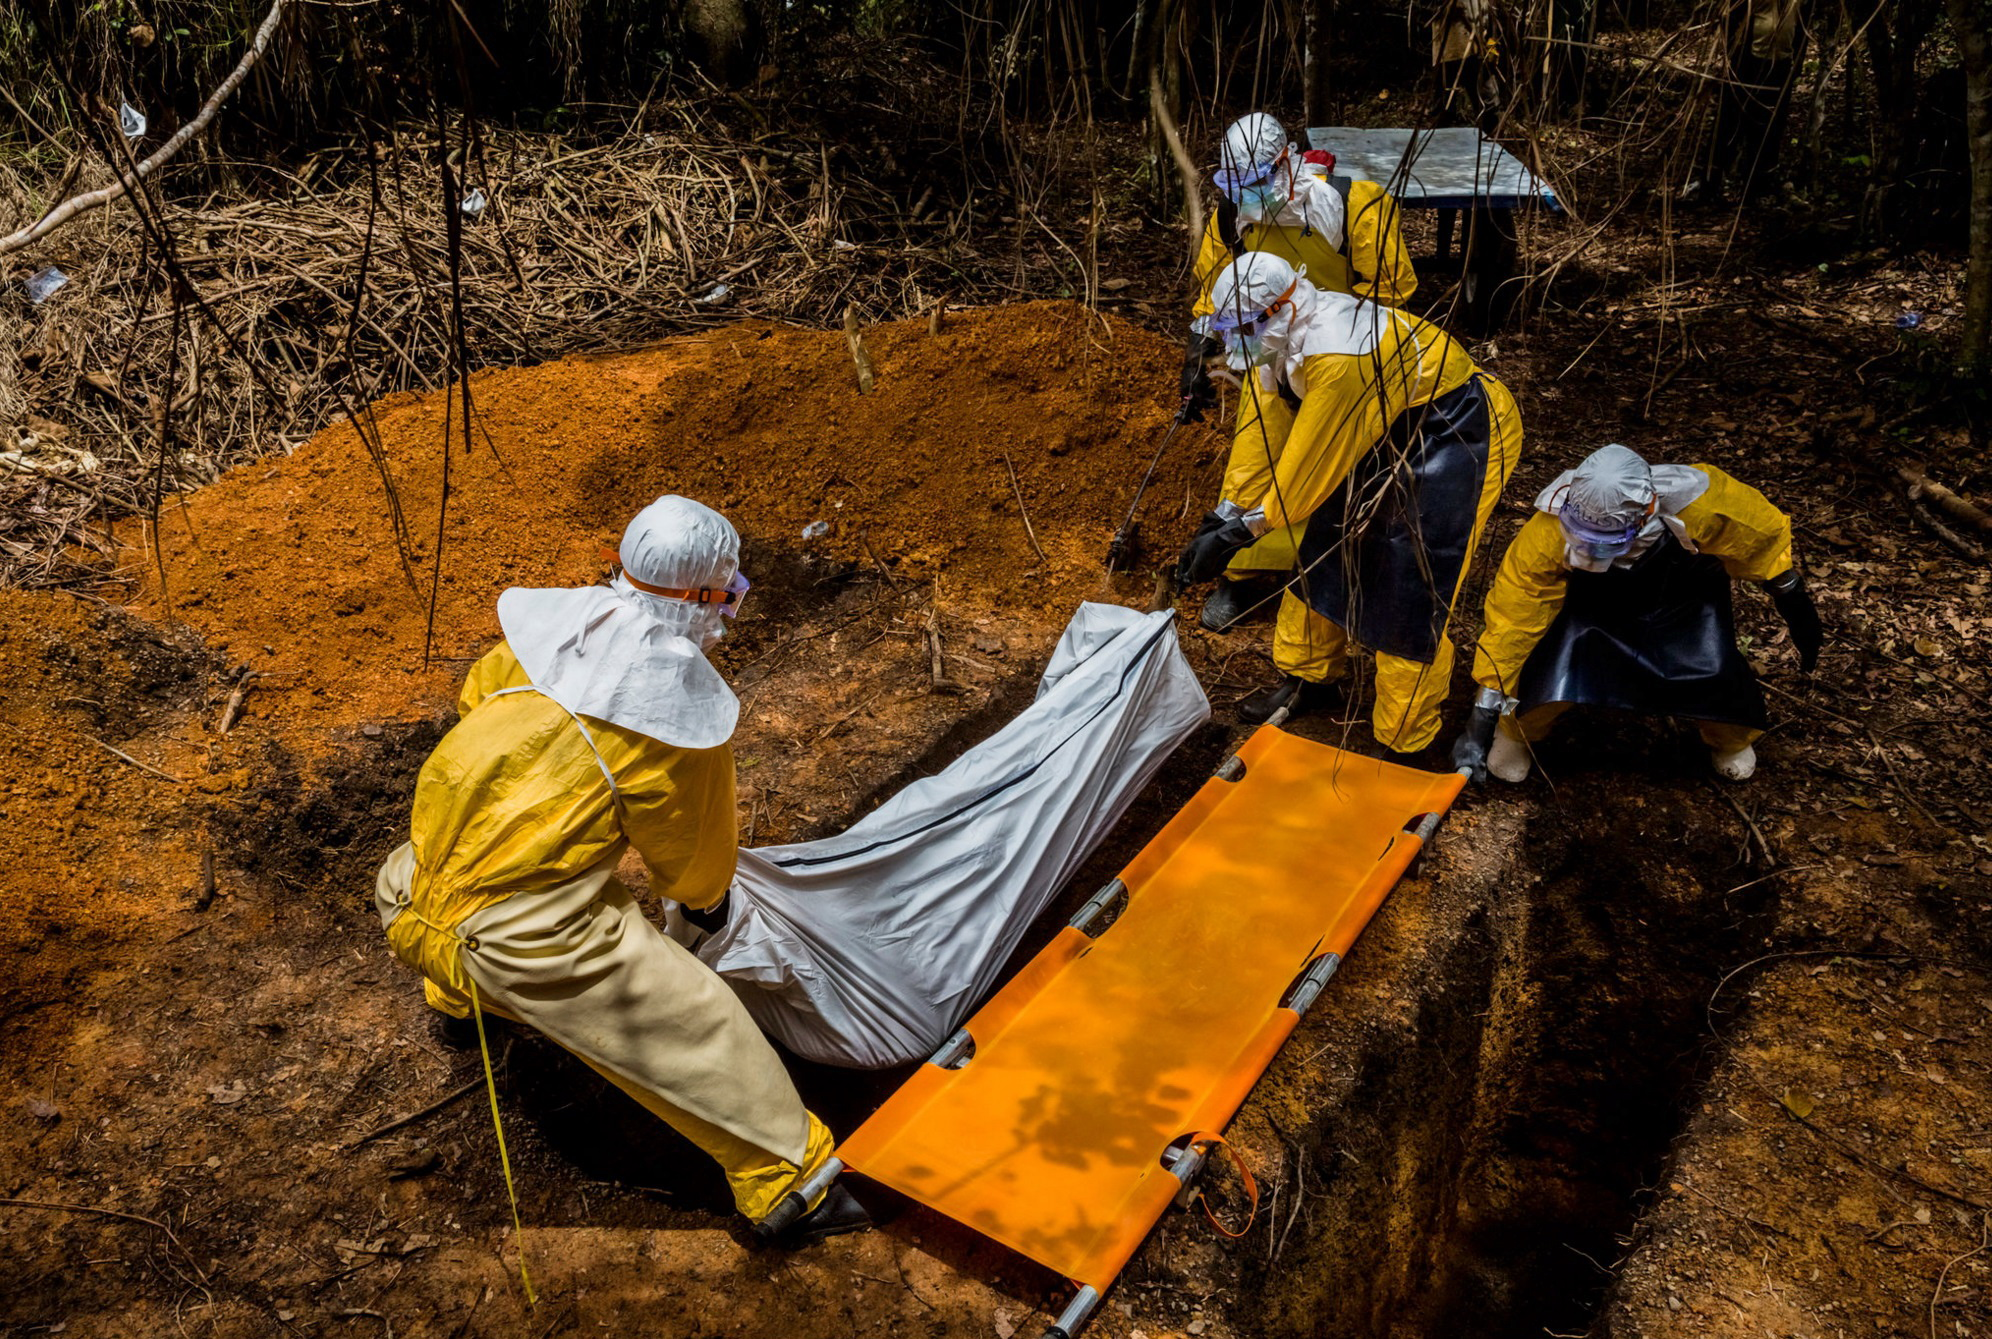 A burial team transfer Ballah Kollie, 20, who lost his fight against Ebola yesterday, into his resting place in a graveyard adjacent to the Bong County Ebola Treatment Unit in Suakoko near Gbarnga in Bong County, Liberia. October 6, 2014 © Daniel Berehulak for The New York Times